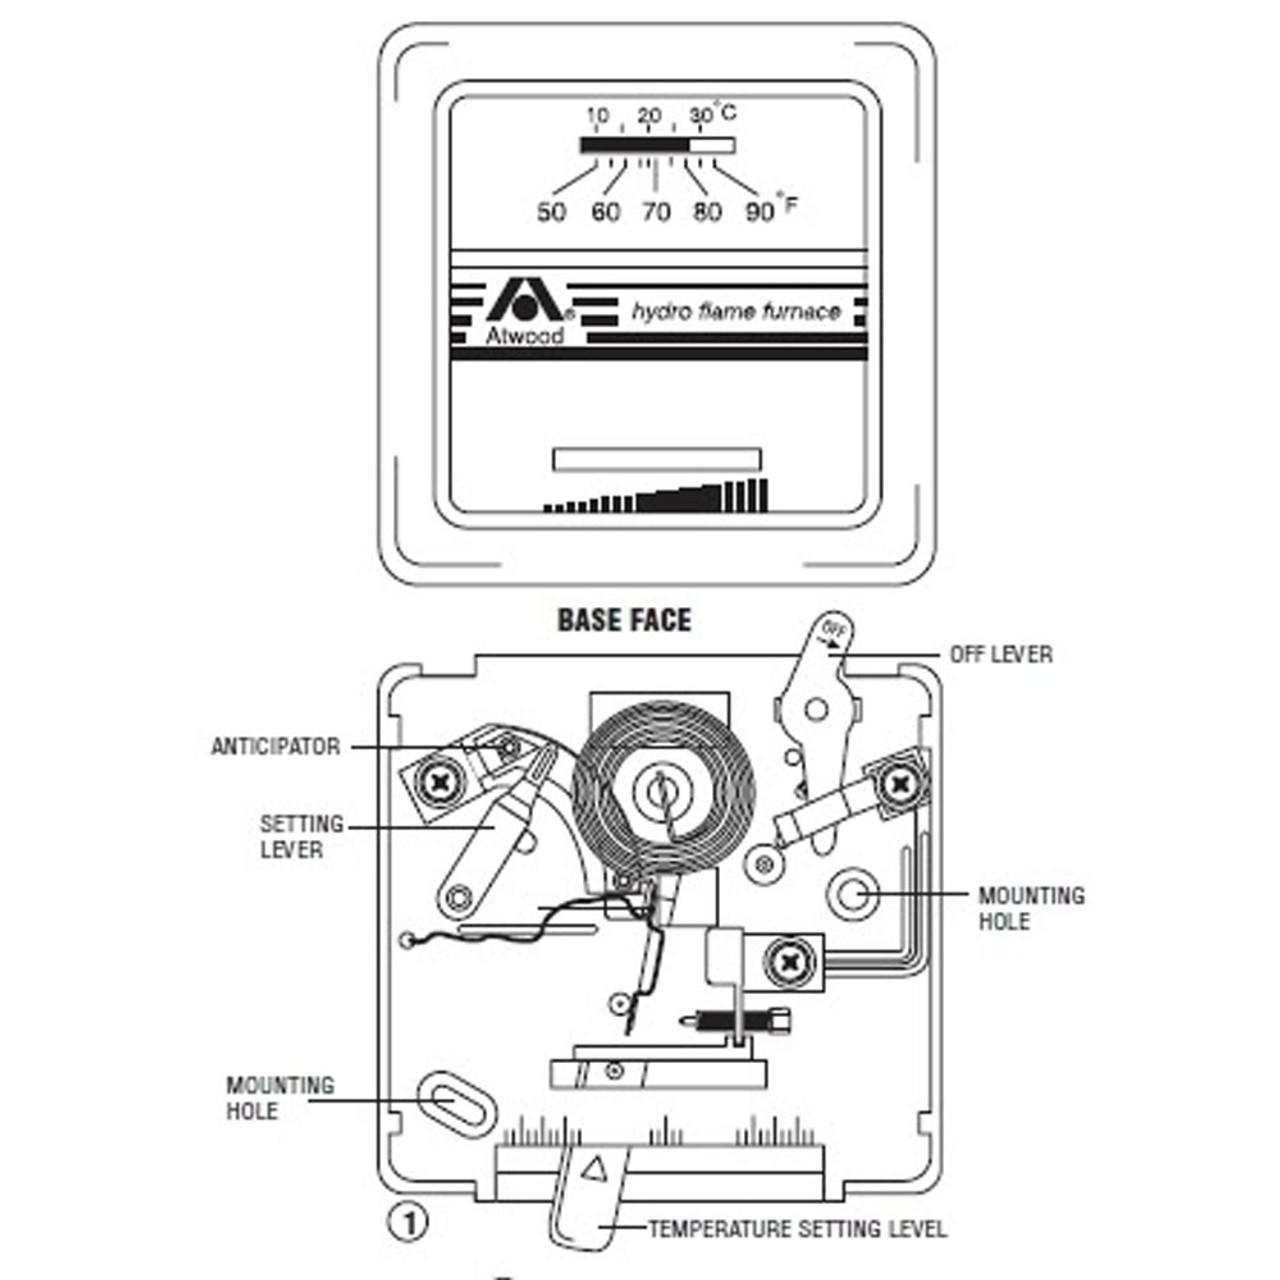 hydro flame furnace wiring automotive wiring diagrams heat pump wiring diagram atwood thermostat wiring diagram free [ 1000 x 1000 Pixel ]